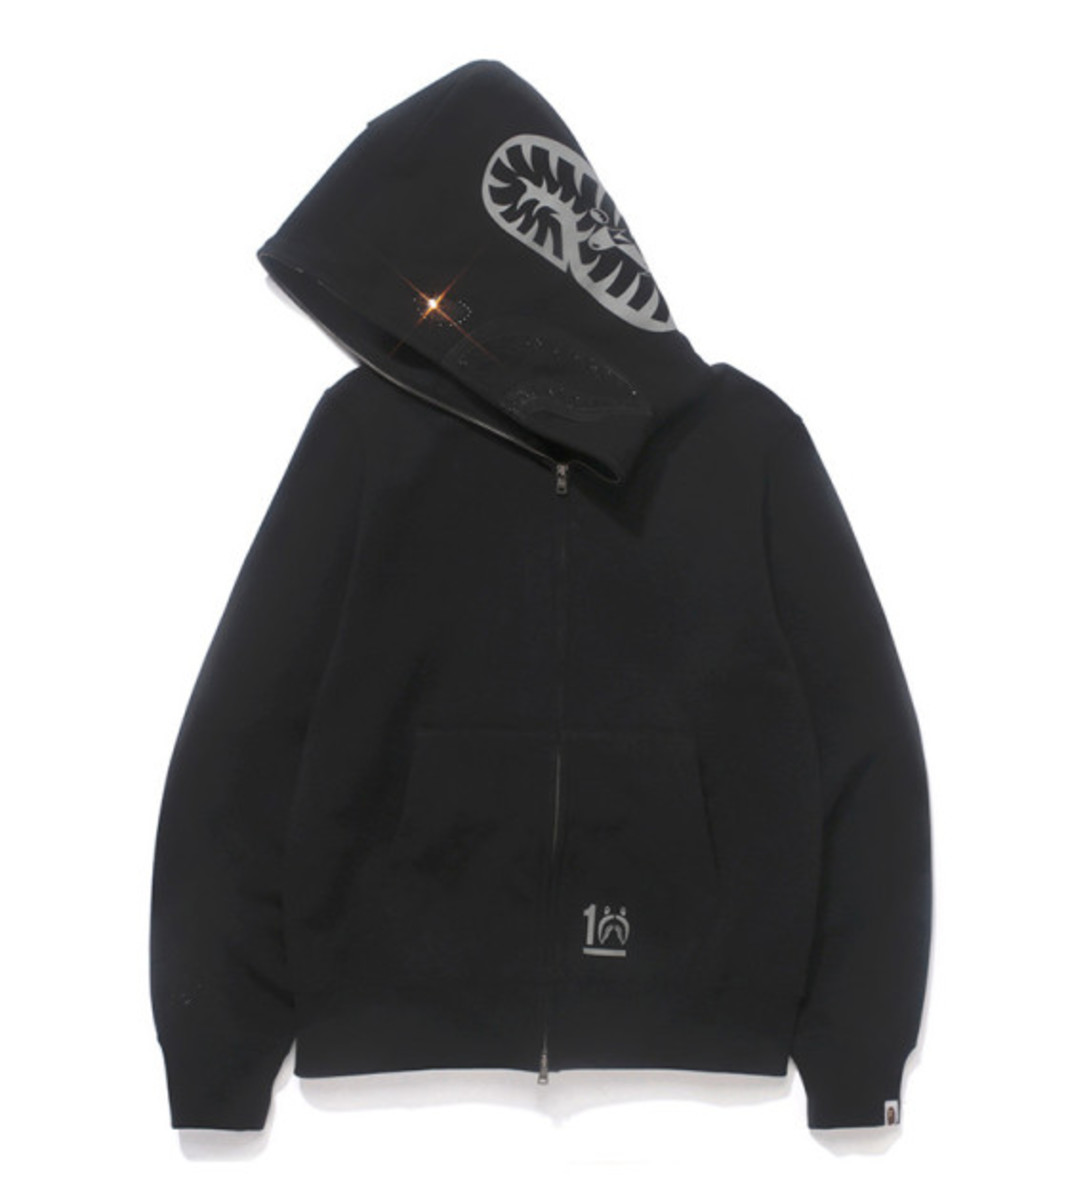 a-bathing-ape-shark-hoodie-10th-anniversary-collection-05